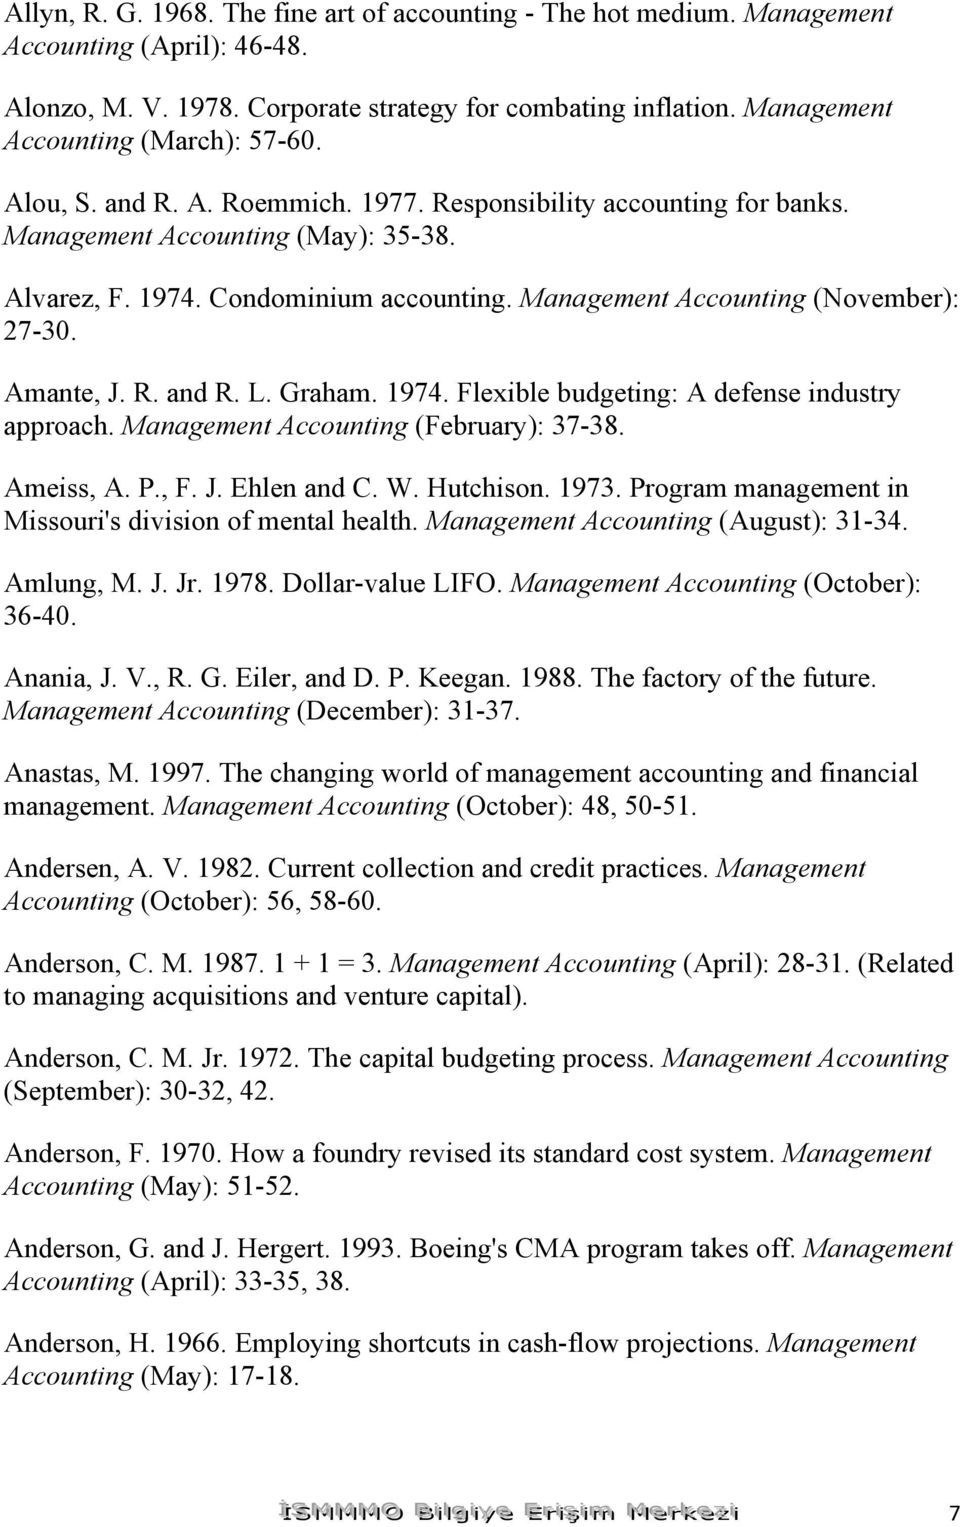 Management Accounting (November): 27-30. Amante, J. R. and R. L. Graham. 1974. Flexible budgeting: A defense industry approach. Management Accounting (February): 37-38. Ameiss, A. P., F. J. Ehlen and C.